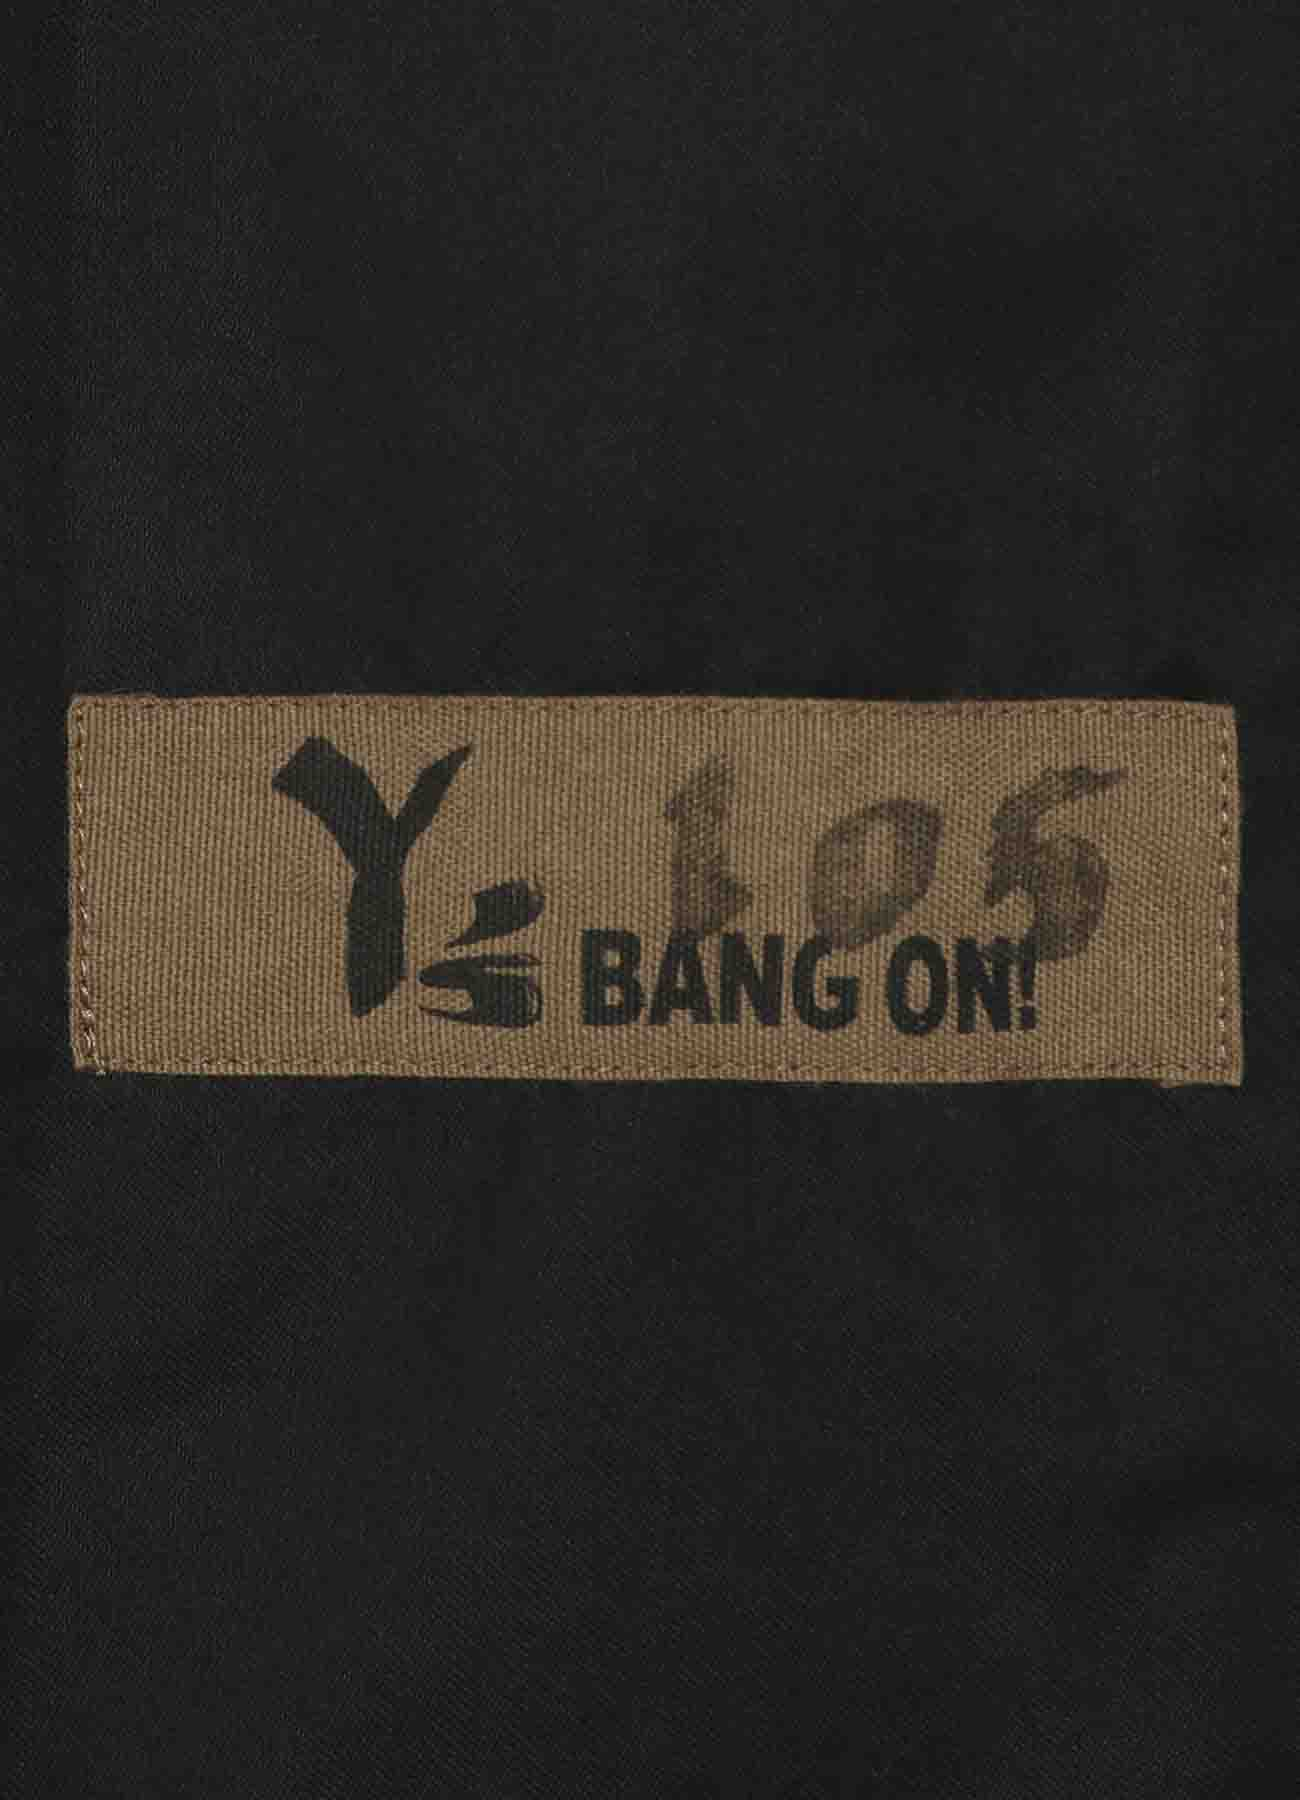 Y's BANG ON!No.105 Bandage Pants Cotton Twill